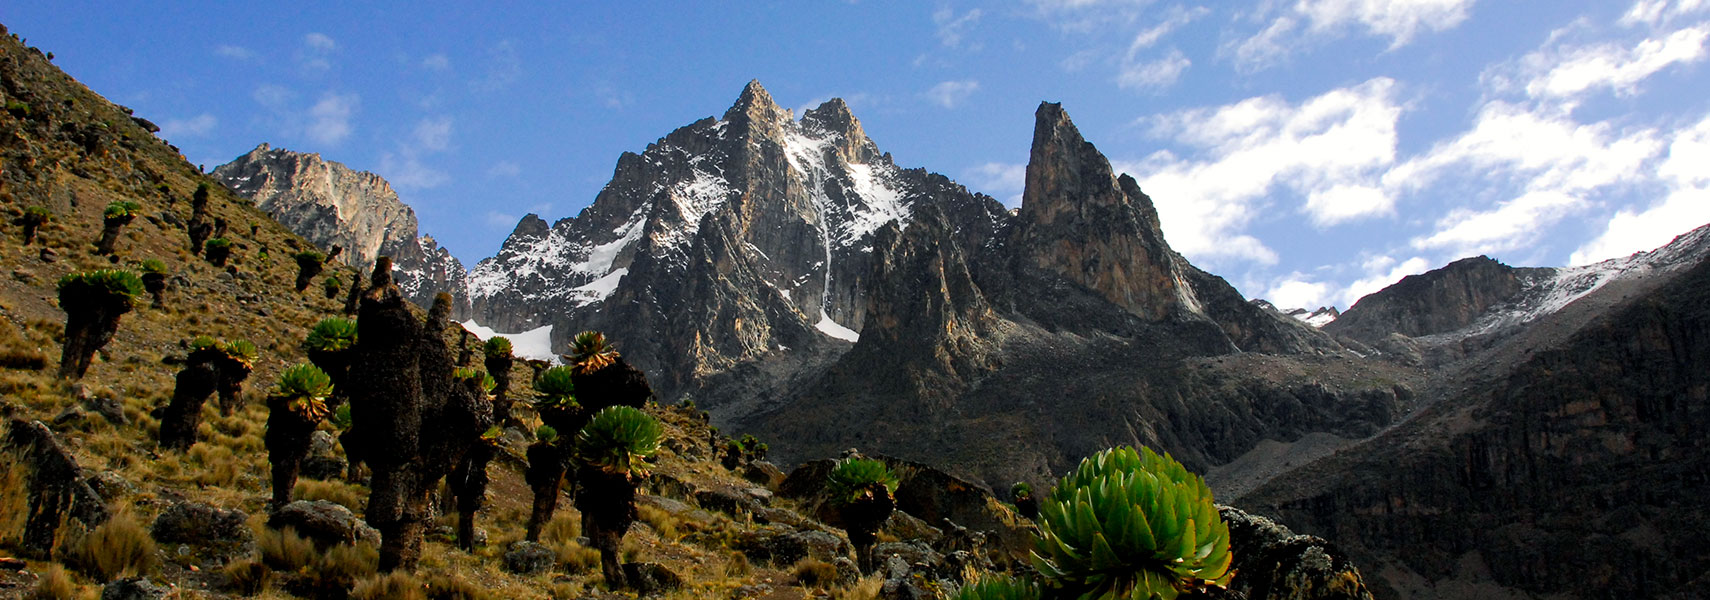 Mount Kenya highest mountain in Kenya